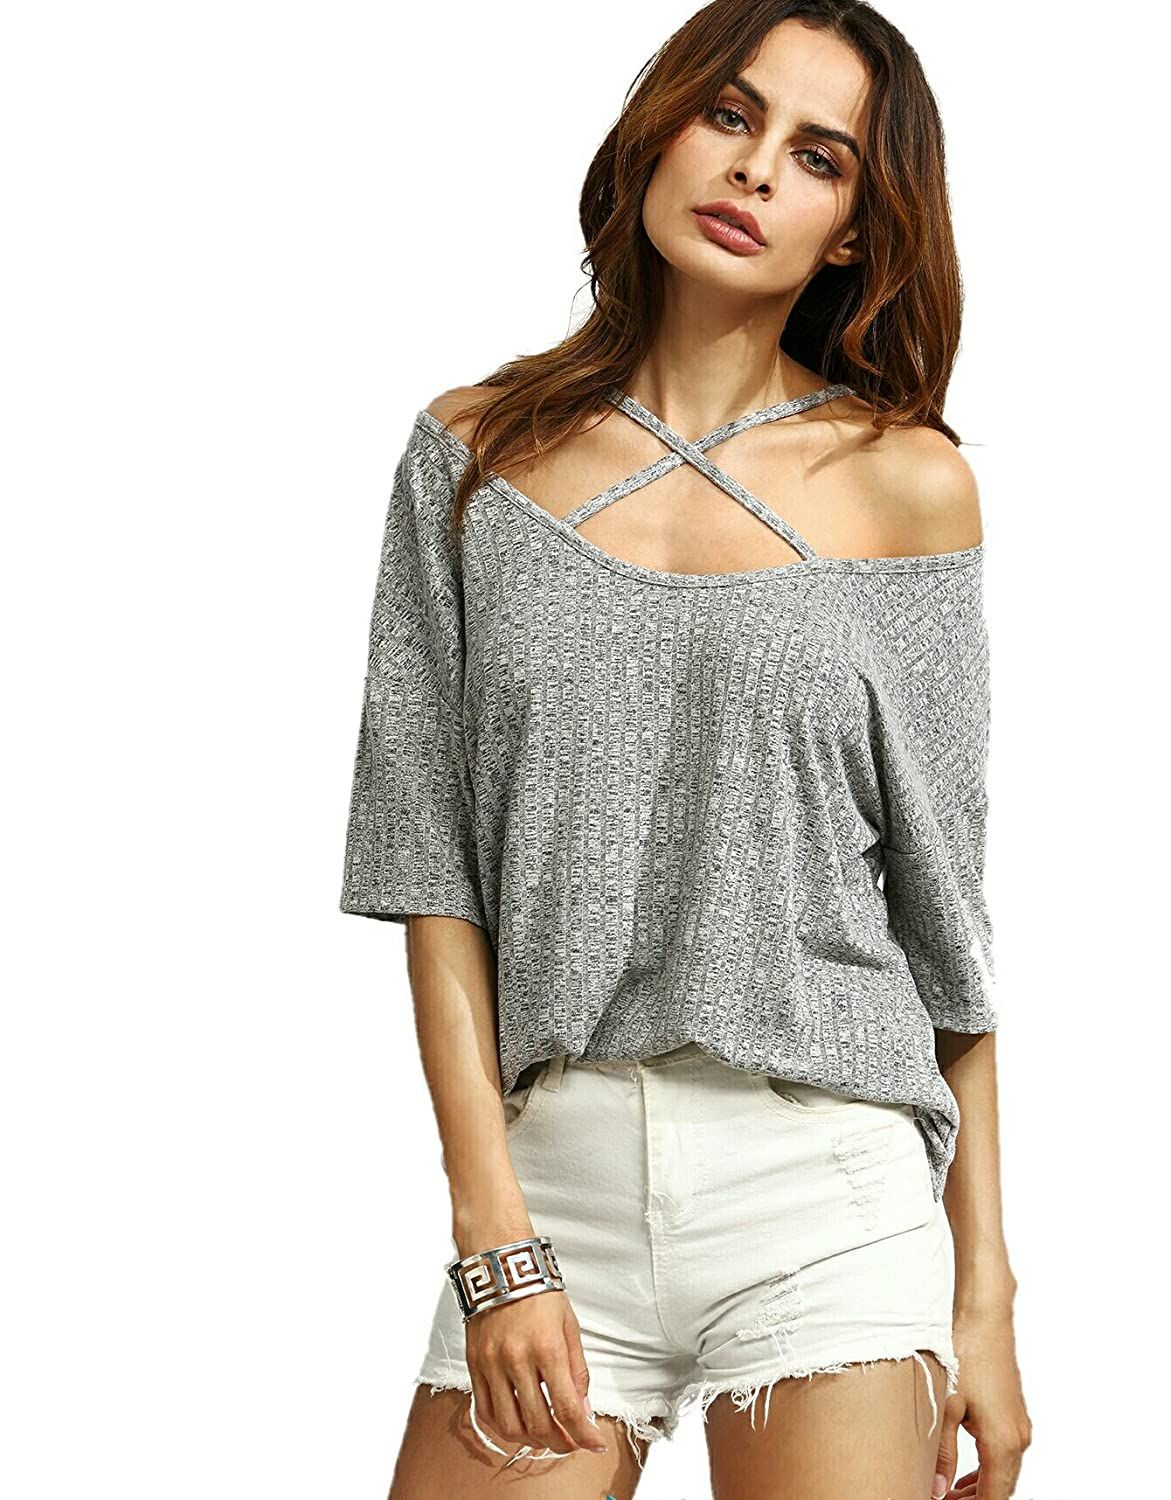 c1f2195c0f Vitans Women s Rayon Ribbed Criss Cross Front Cold Shoulder  T-Shirt(tee160912701